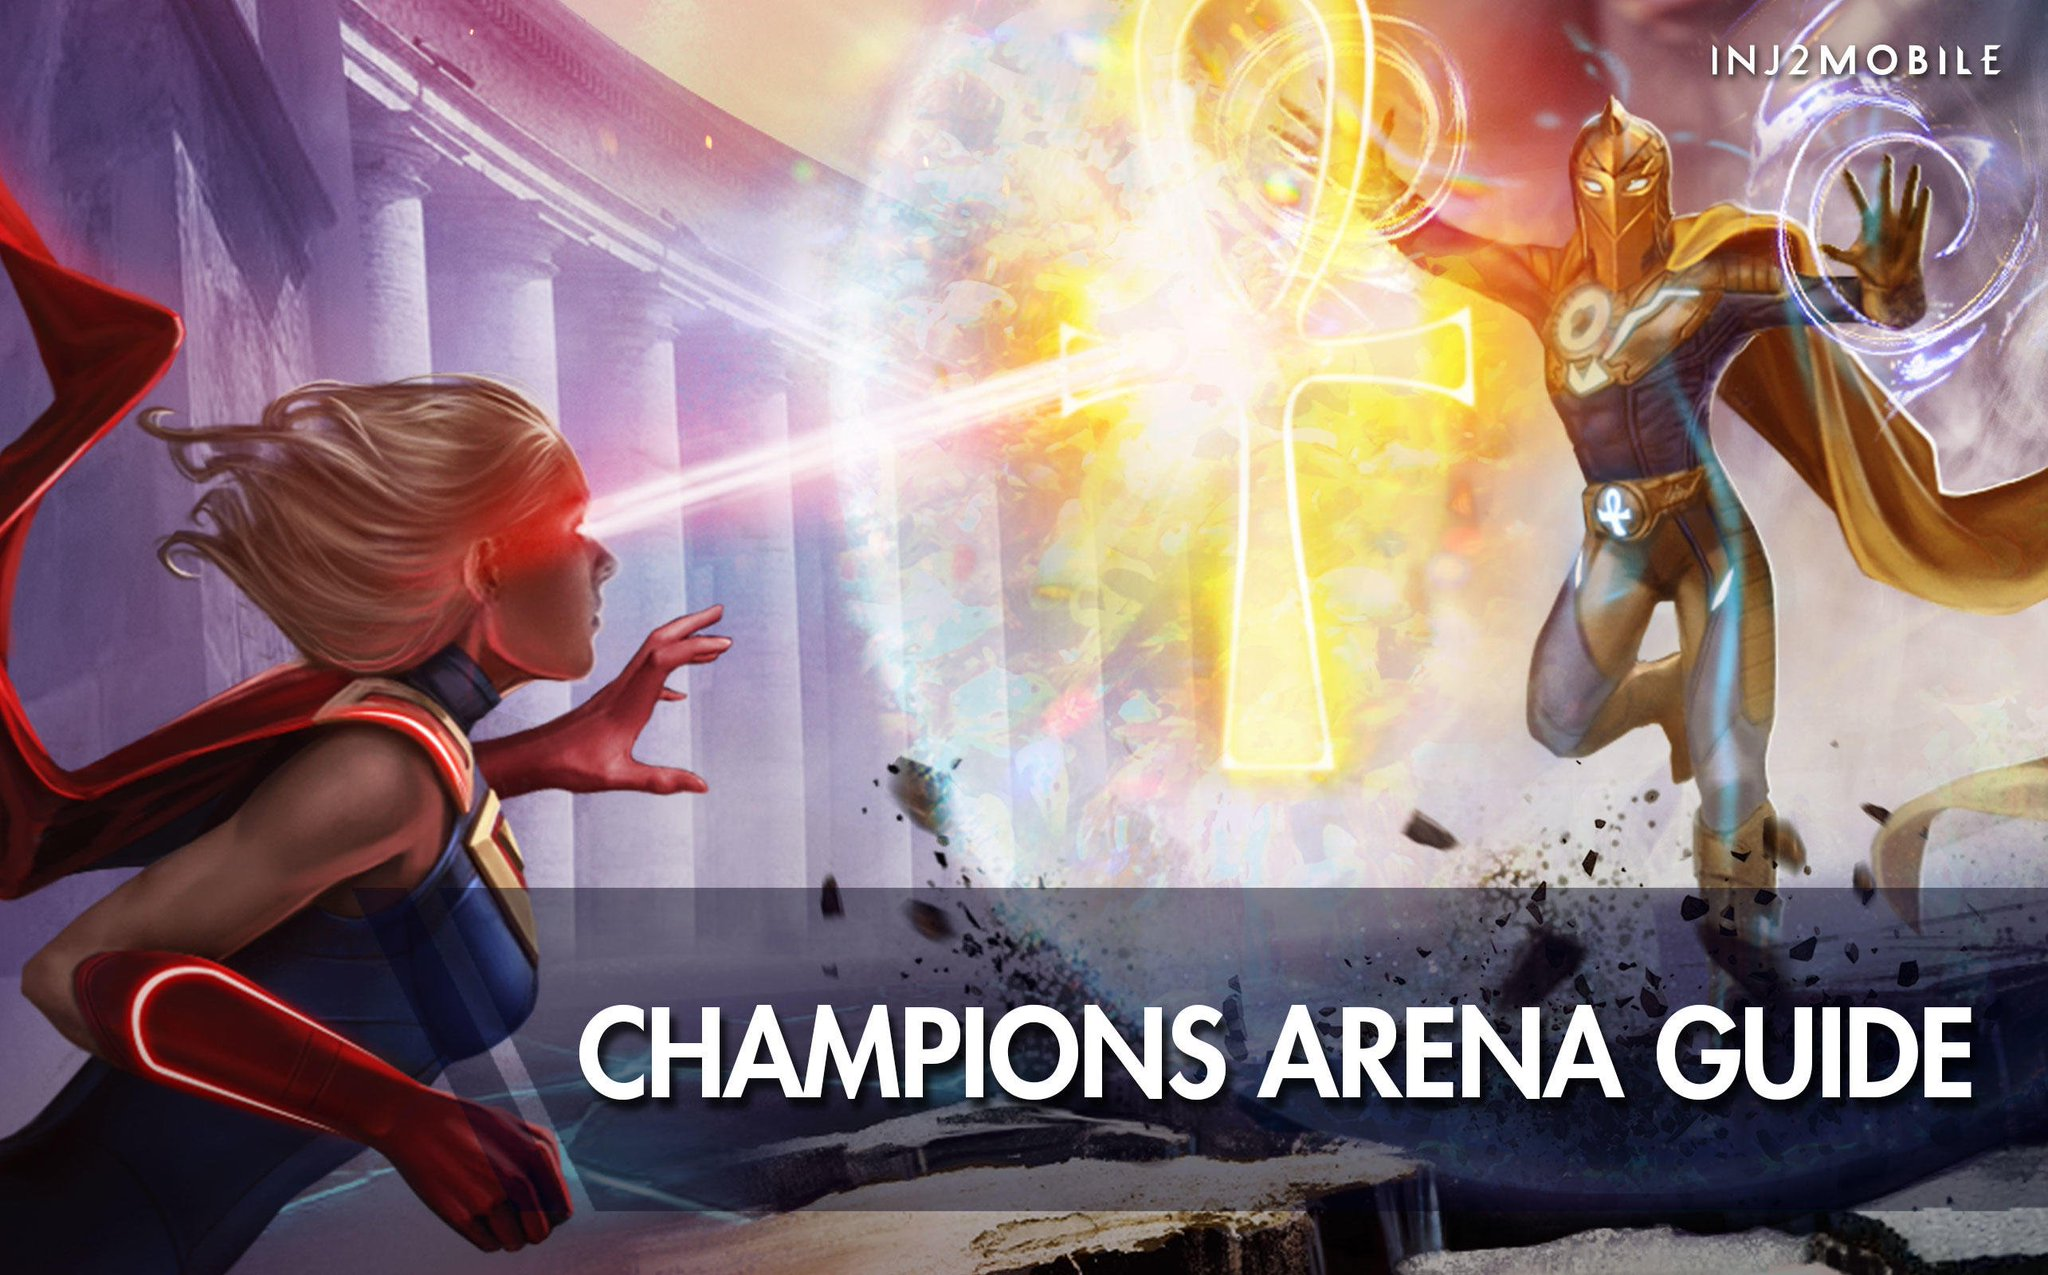 Injustice_2_Mobile_-_Champions_Arena_Guide.jpg